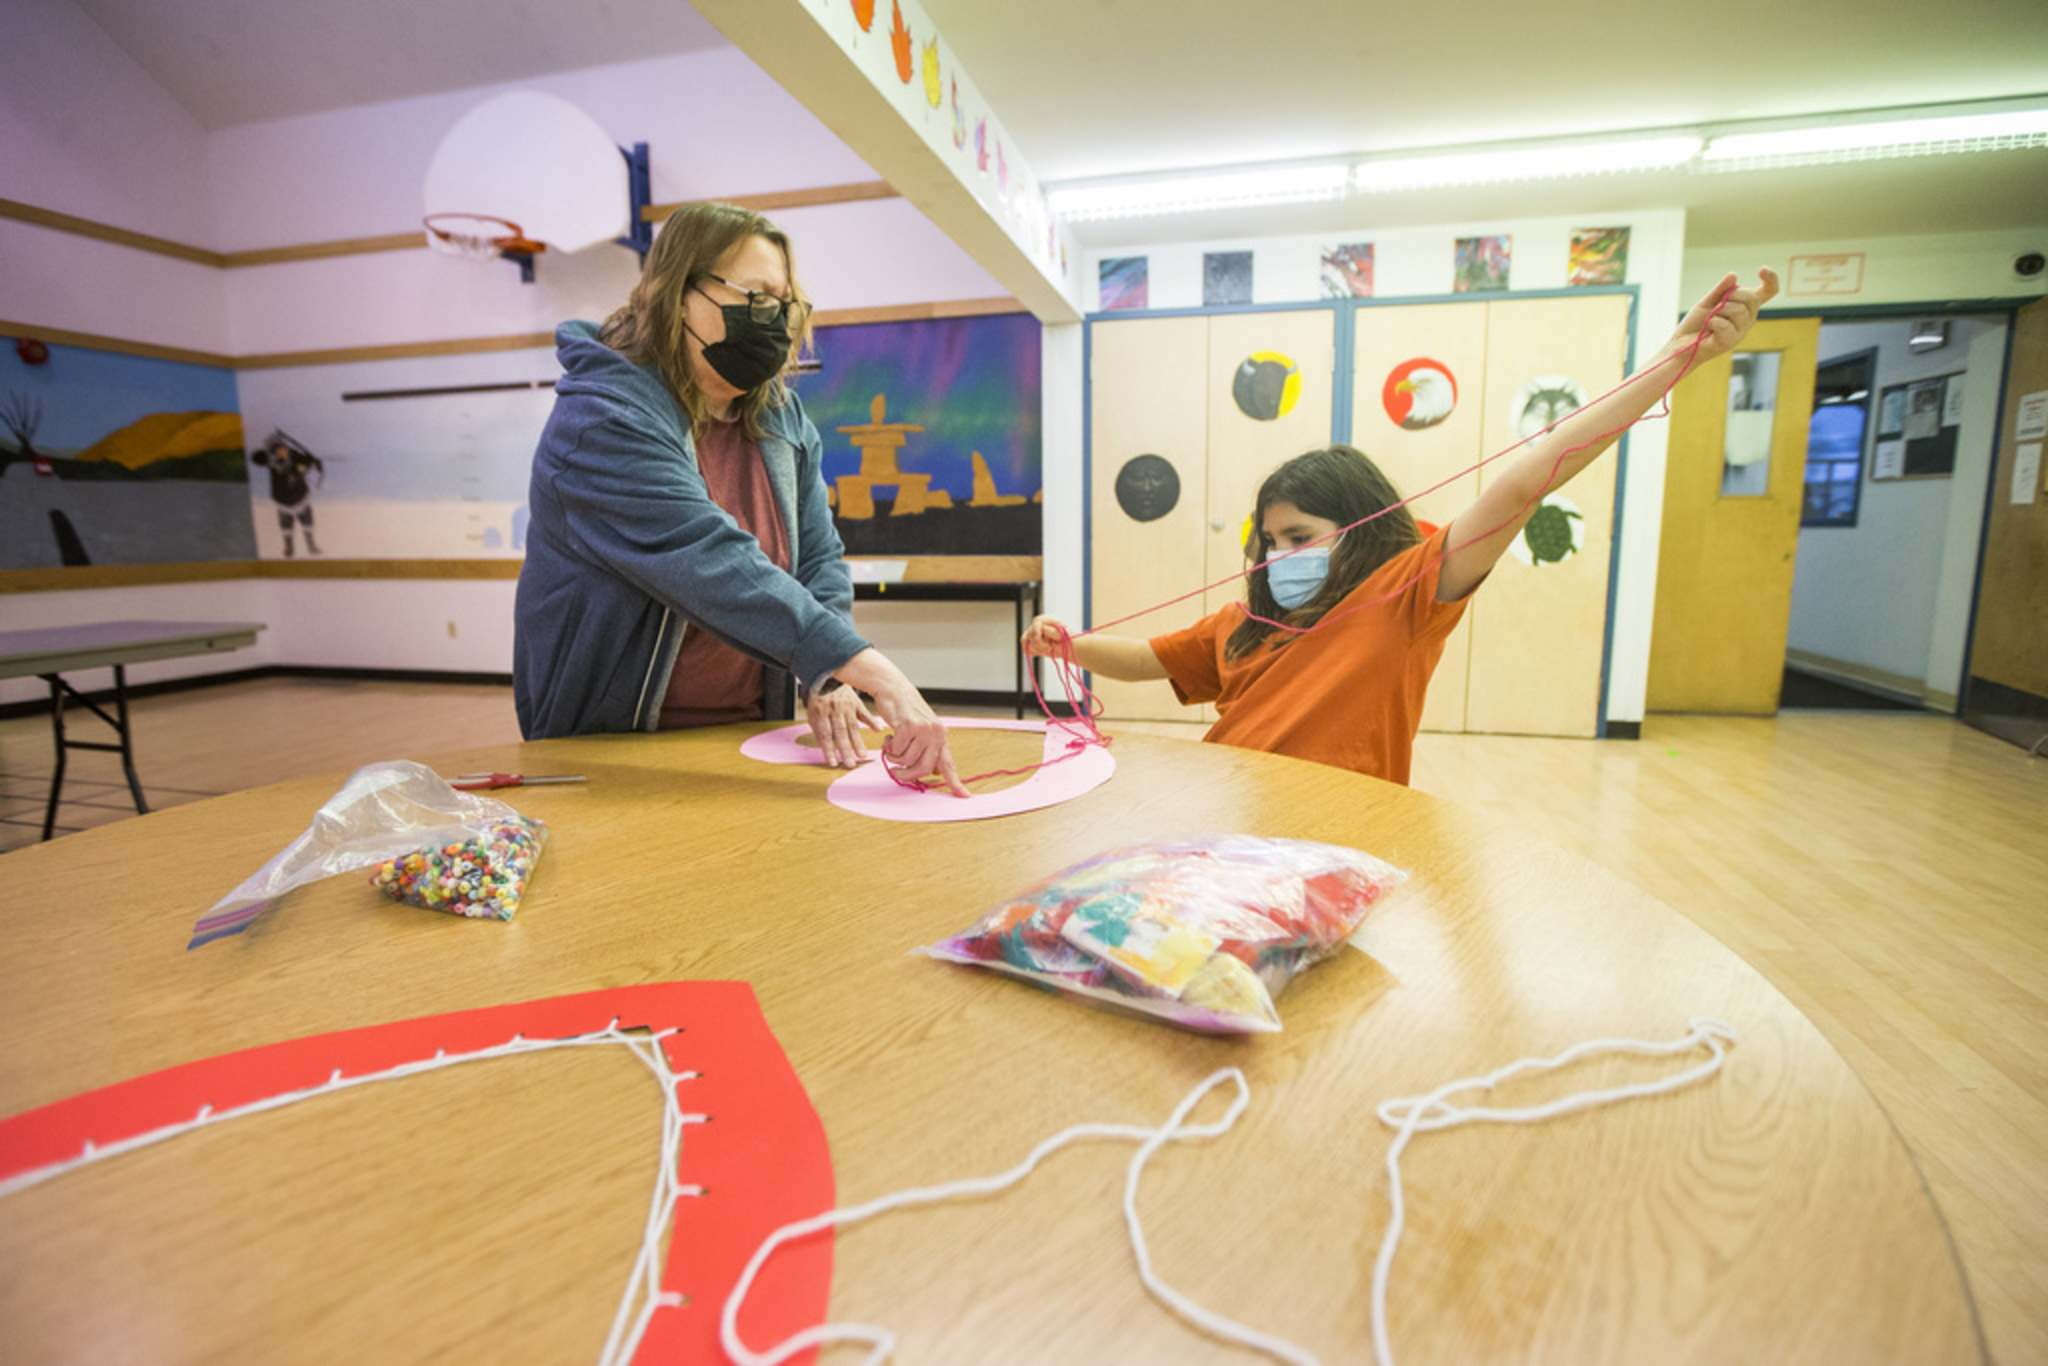 MIKAELA MACKENZIE / WINNIPEG FREE PRESS</p><p>Nine-year-old Savannah, right, makes heart dream catchers with Sheila Chippastance at Rossbrook House, which is celebrating its 45th anniversary.</p>